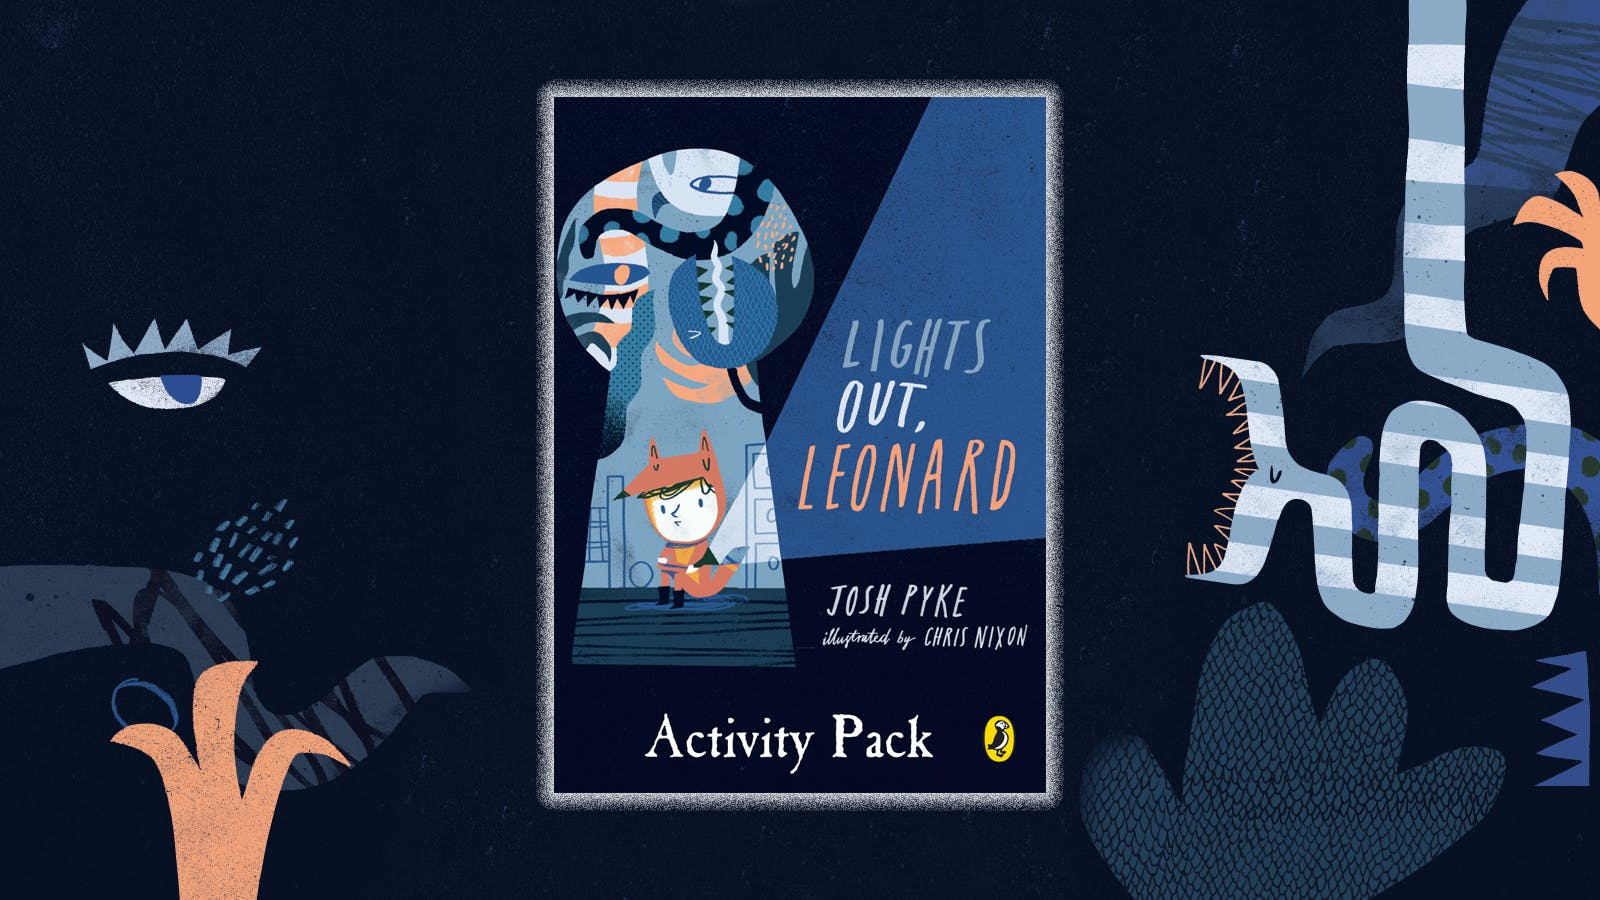 Lights Out, Leonard activity pack